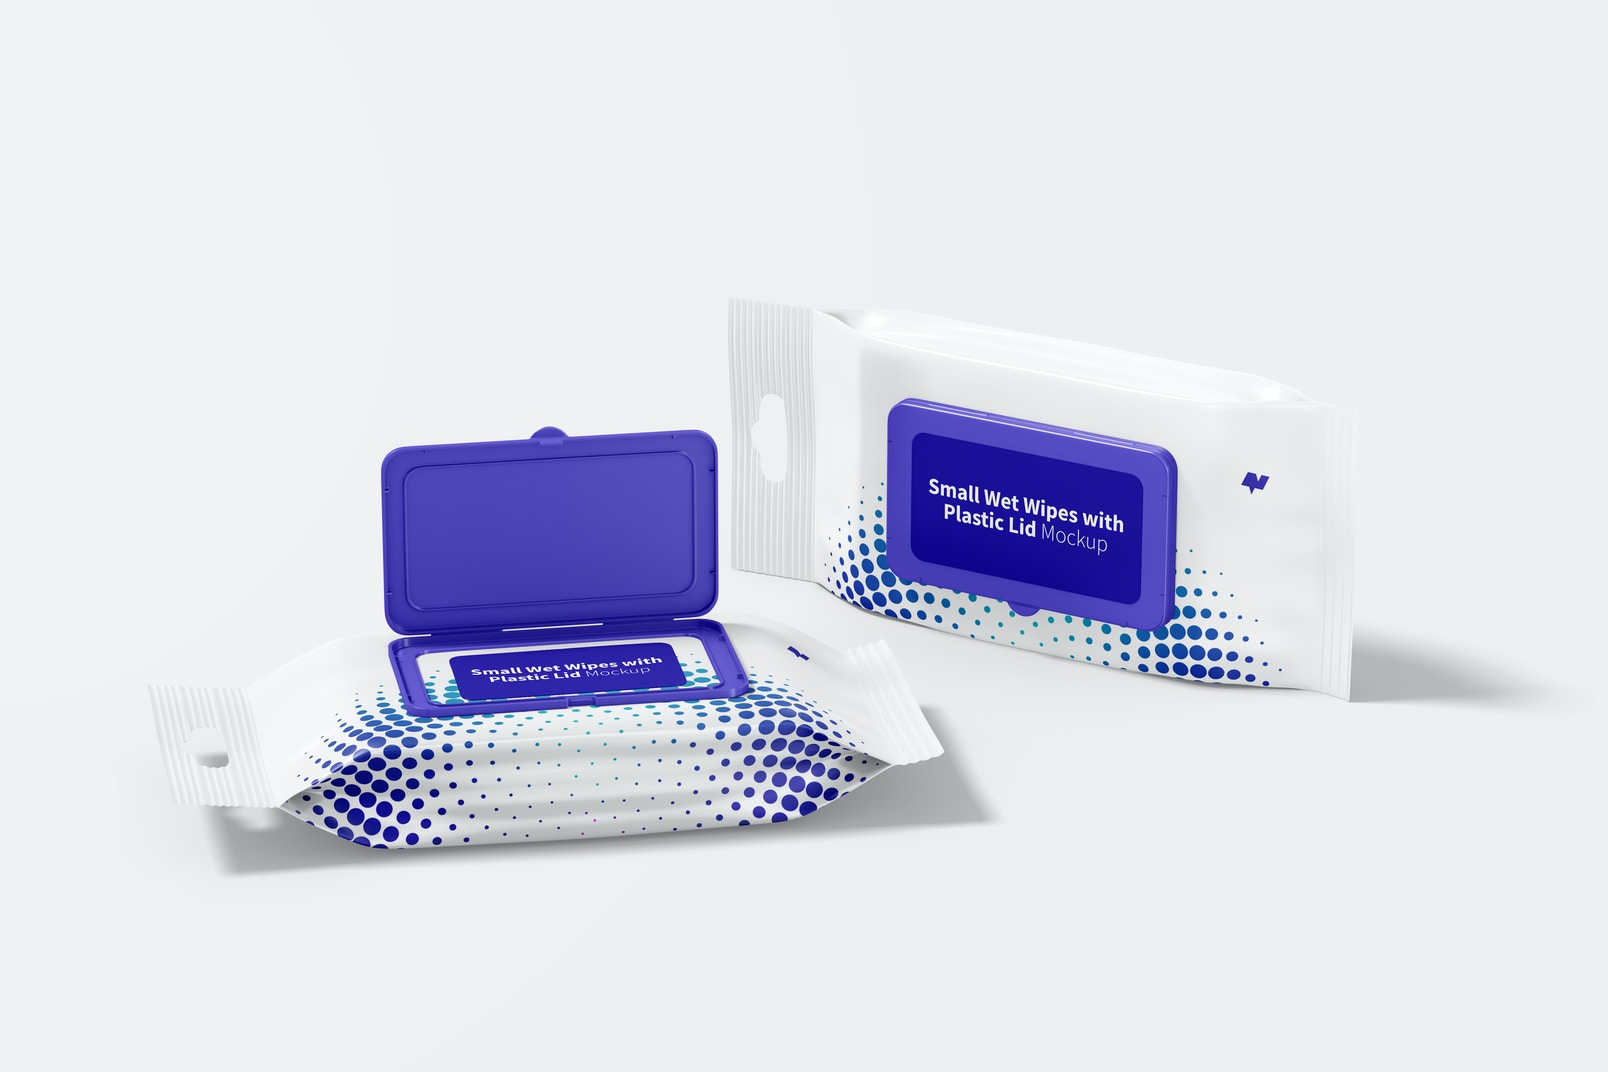 Small Wet Wipes with Plastic Lid Packaging Mockup, Opened and Closed